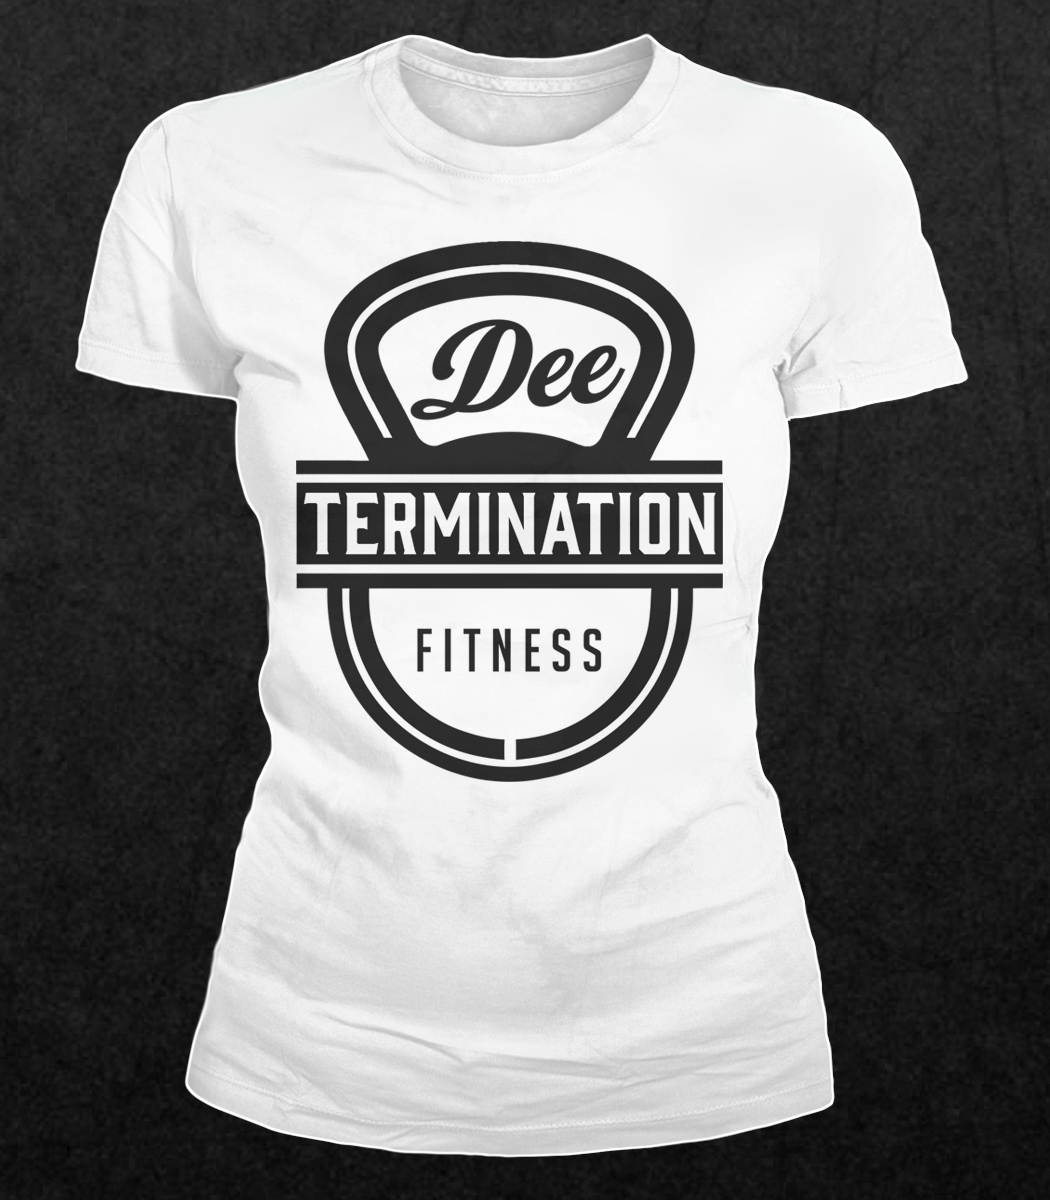 Bold modern t shirt design for dee westland by kid ink for Modern t shirt designs